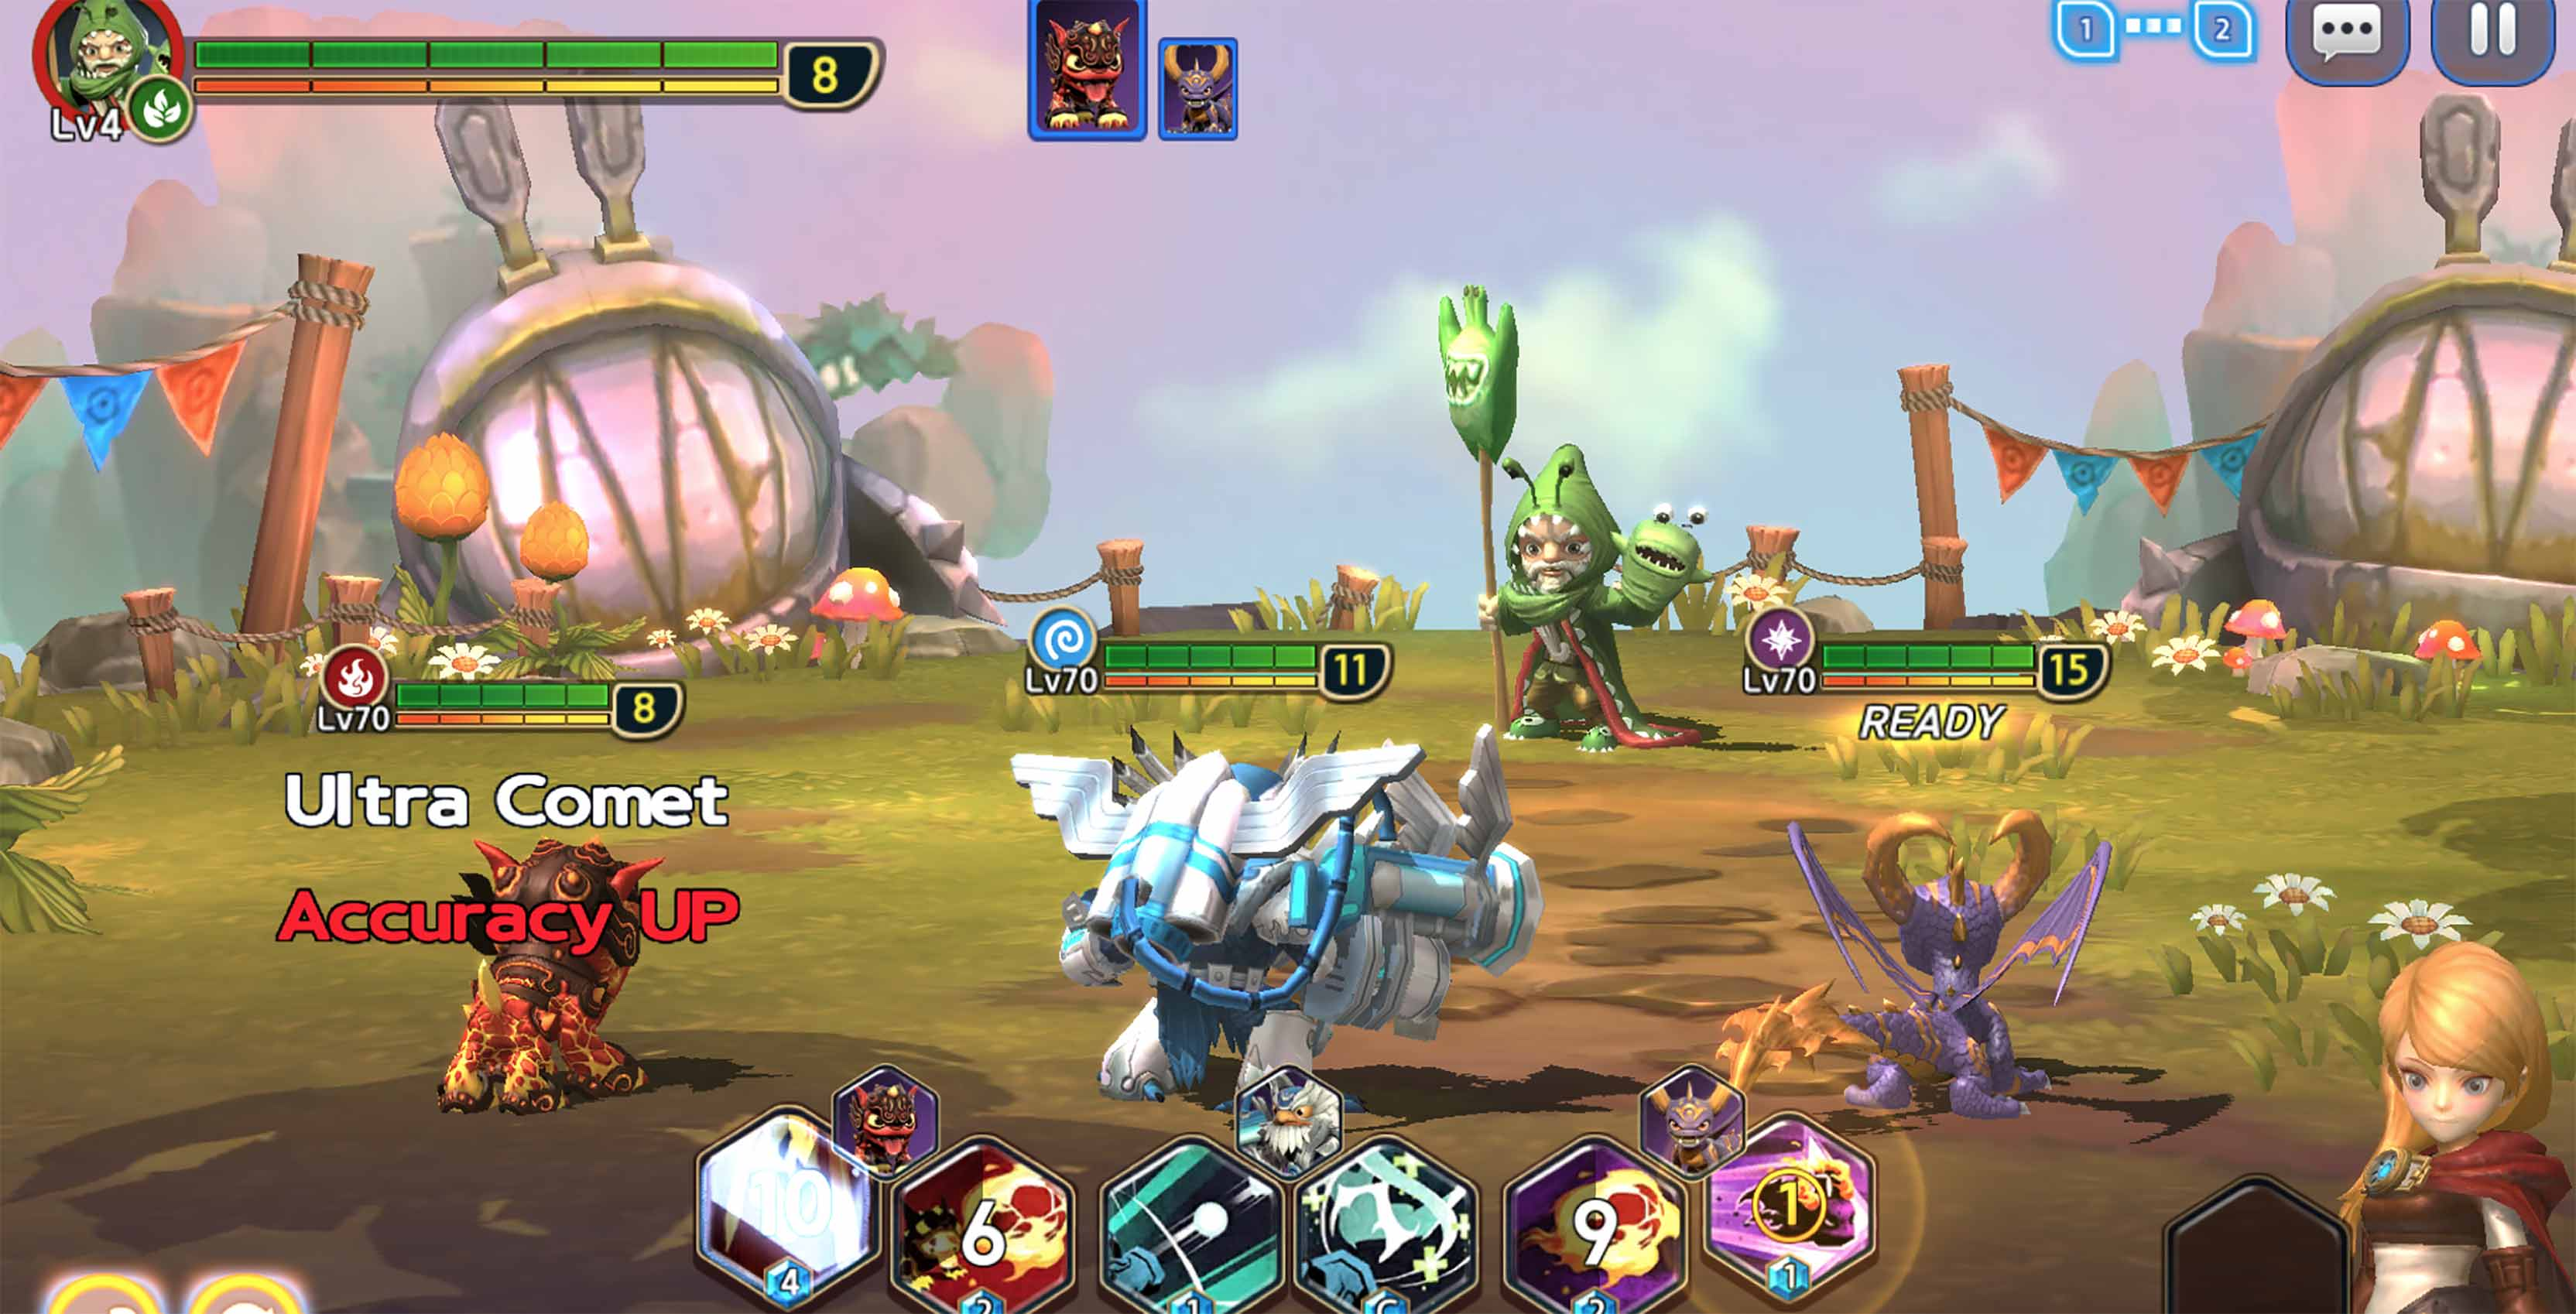 Toys To Life Series Skylanders Is Coming To Mobile As A Turn Based Rpg